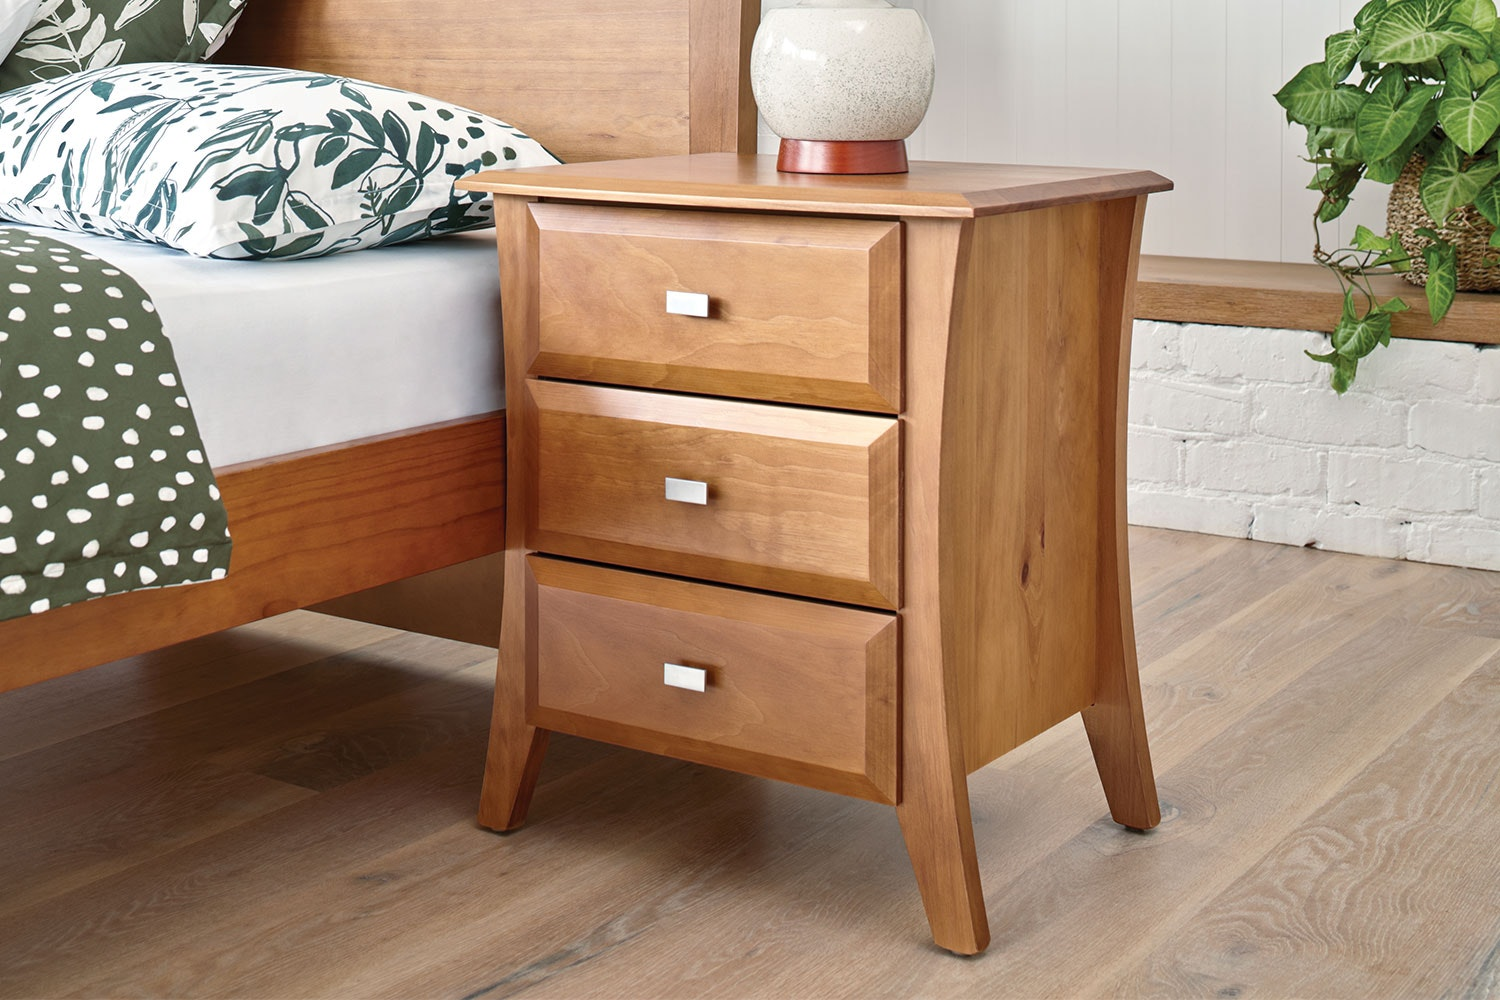 Lynbrook 4 Piece Tallboy Suite by Coastwood Furniture - Bedside Table